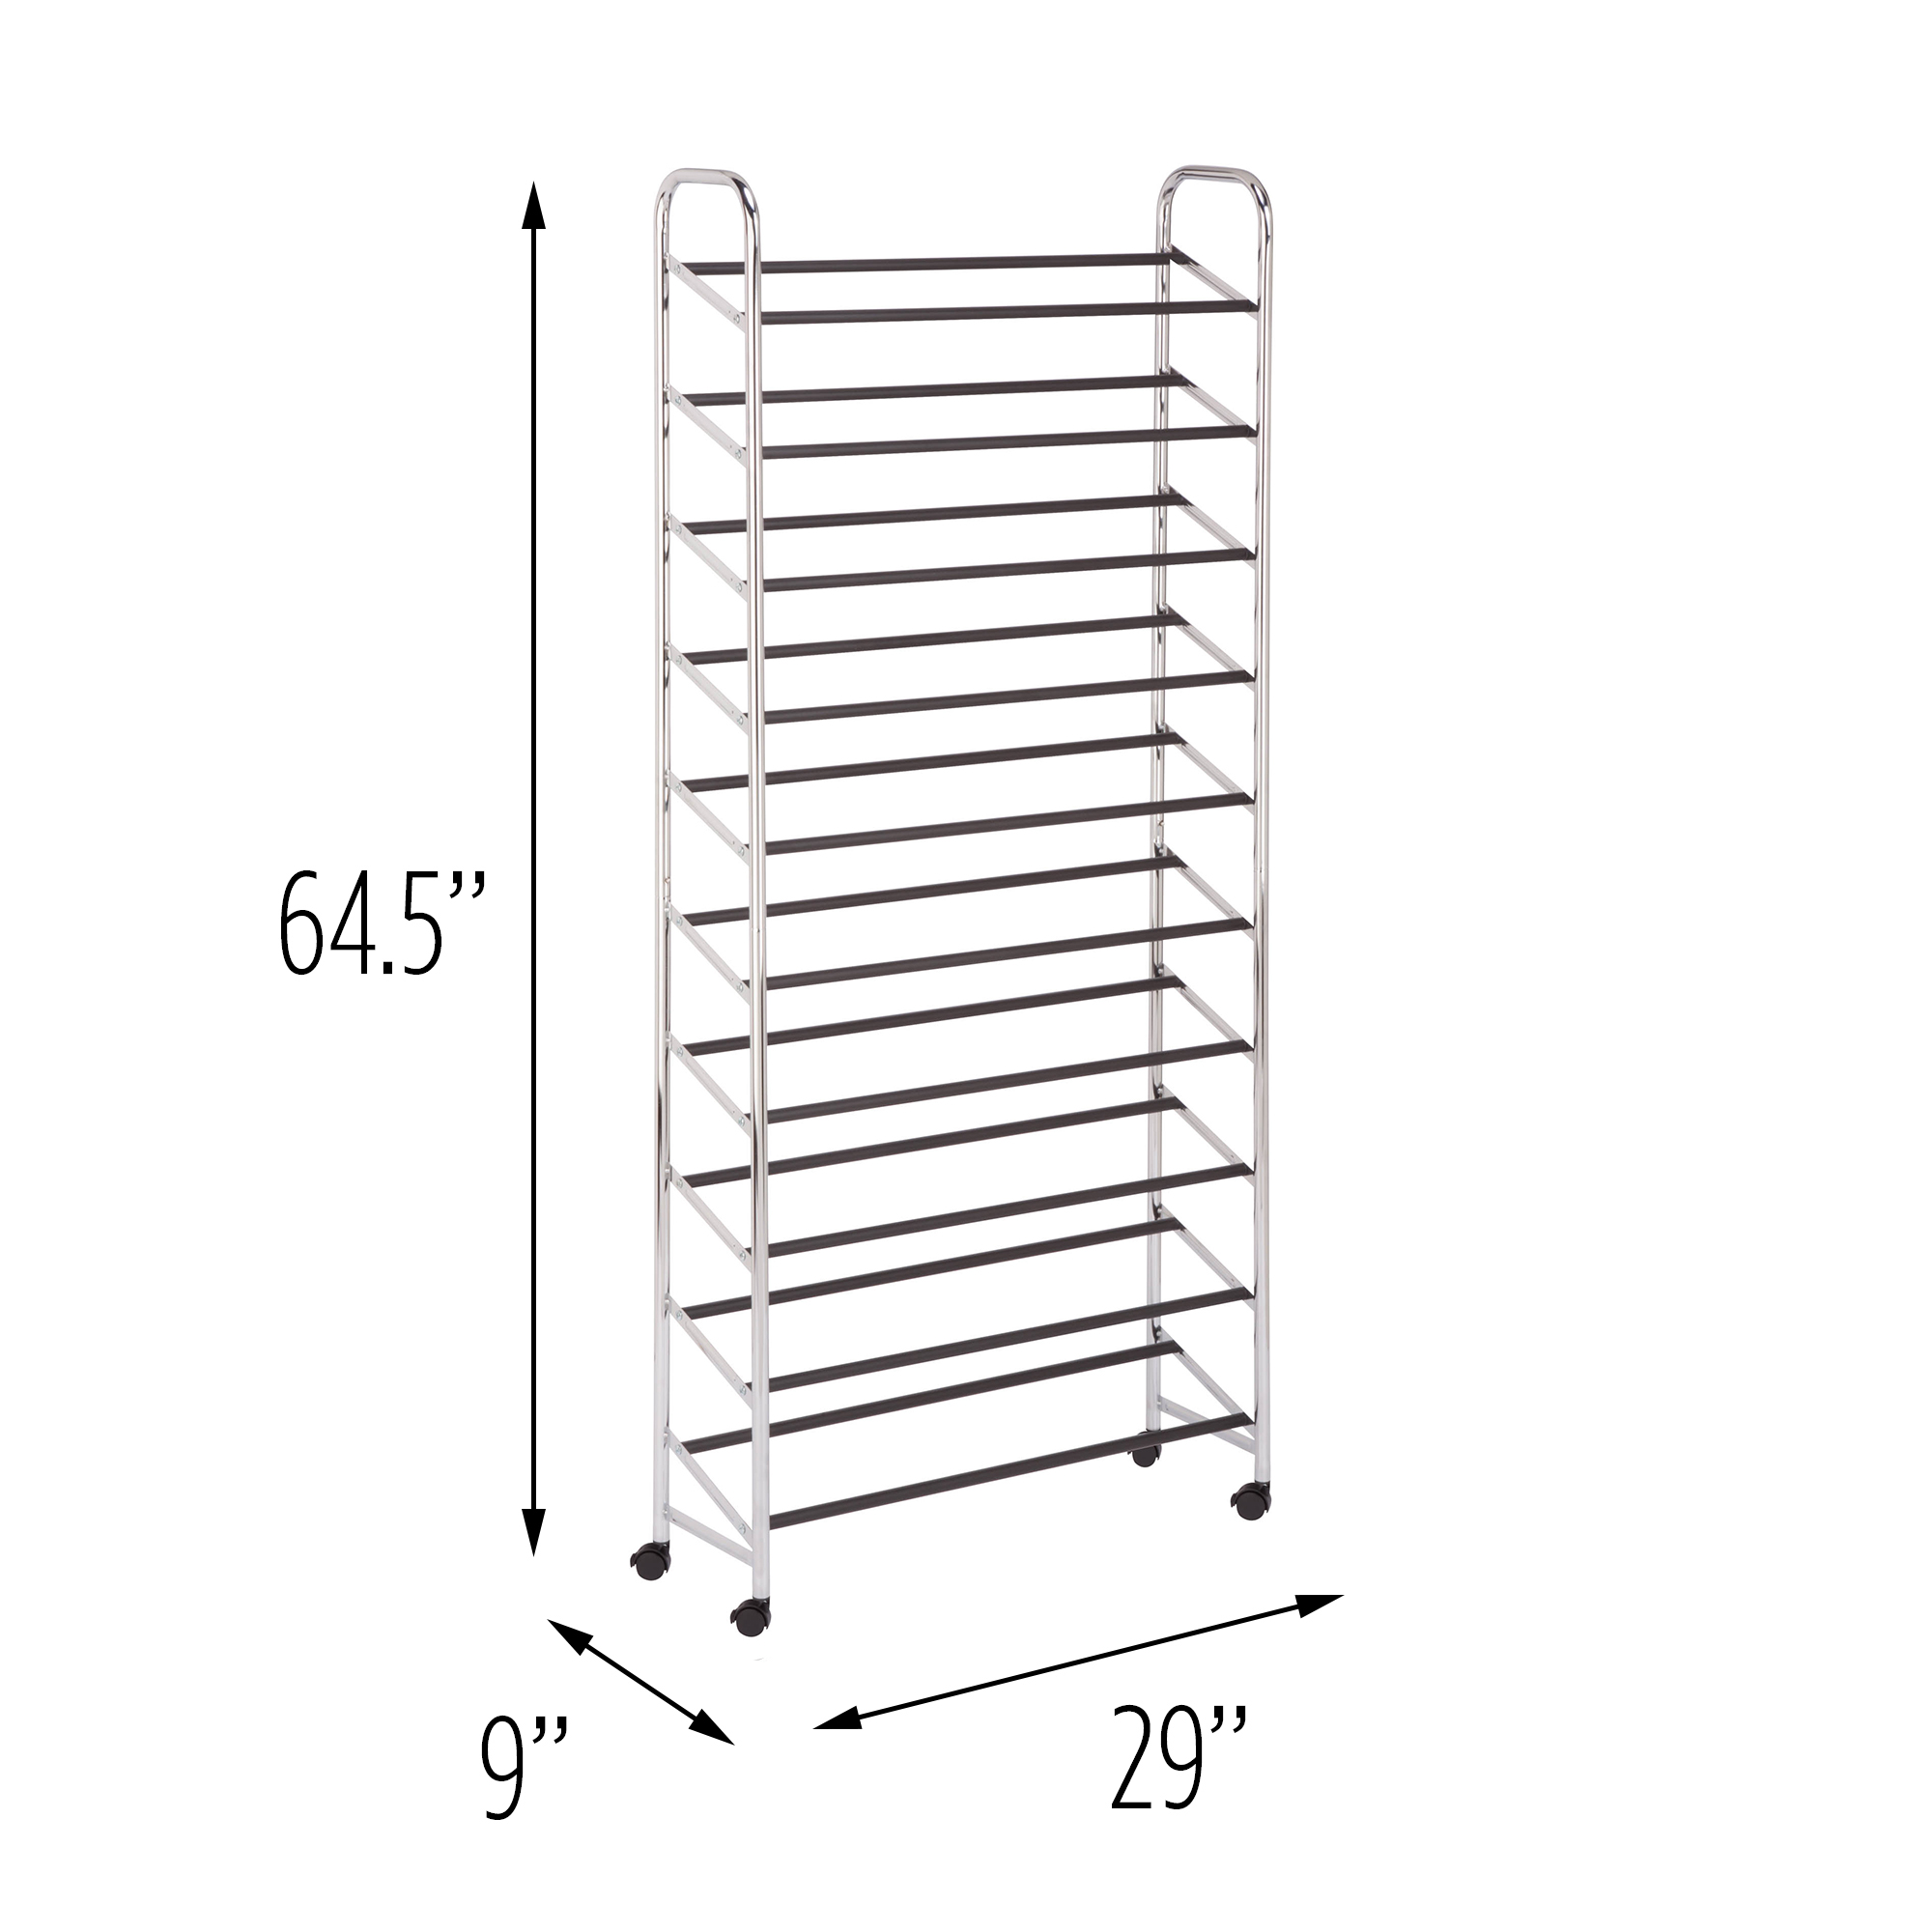 Honey Can Do 50-Pair Steel Rolling Shoe Tower, Chrome